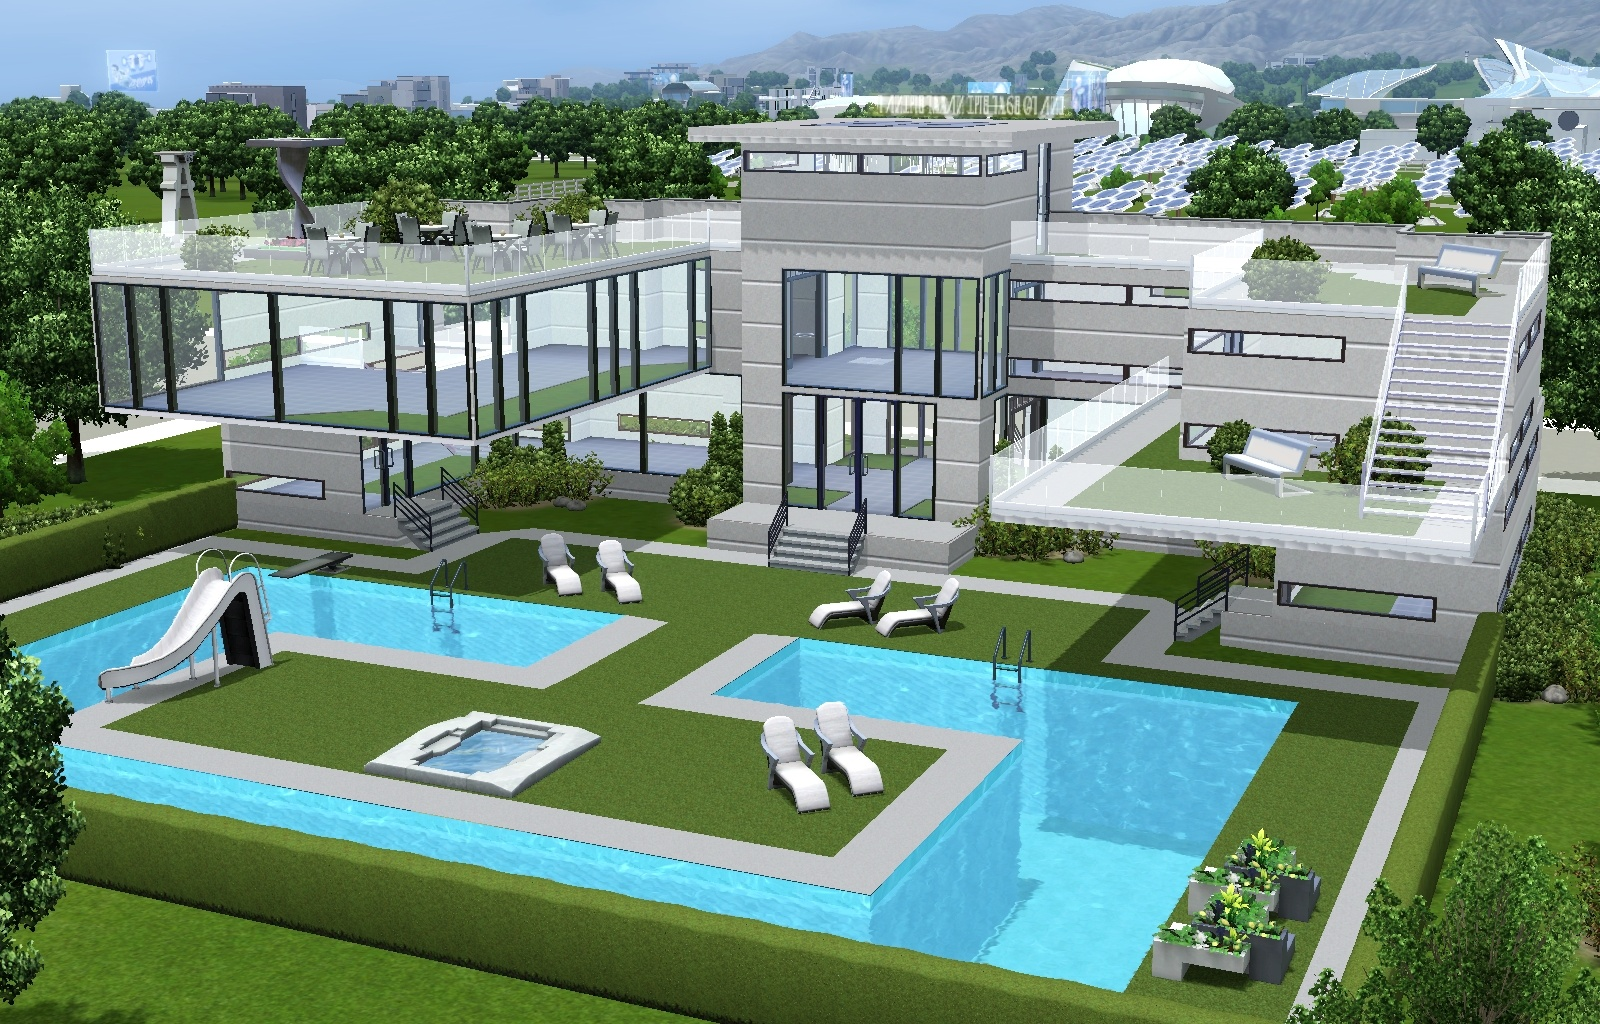 Pool Bauen Sims 4 Must Have Gorgeous Sims 3 Houses And Villas Sims 3 Mod